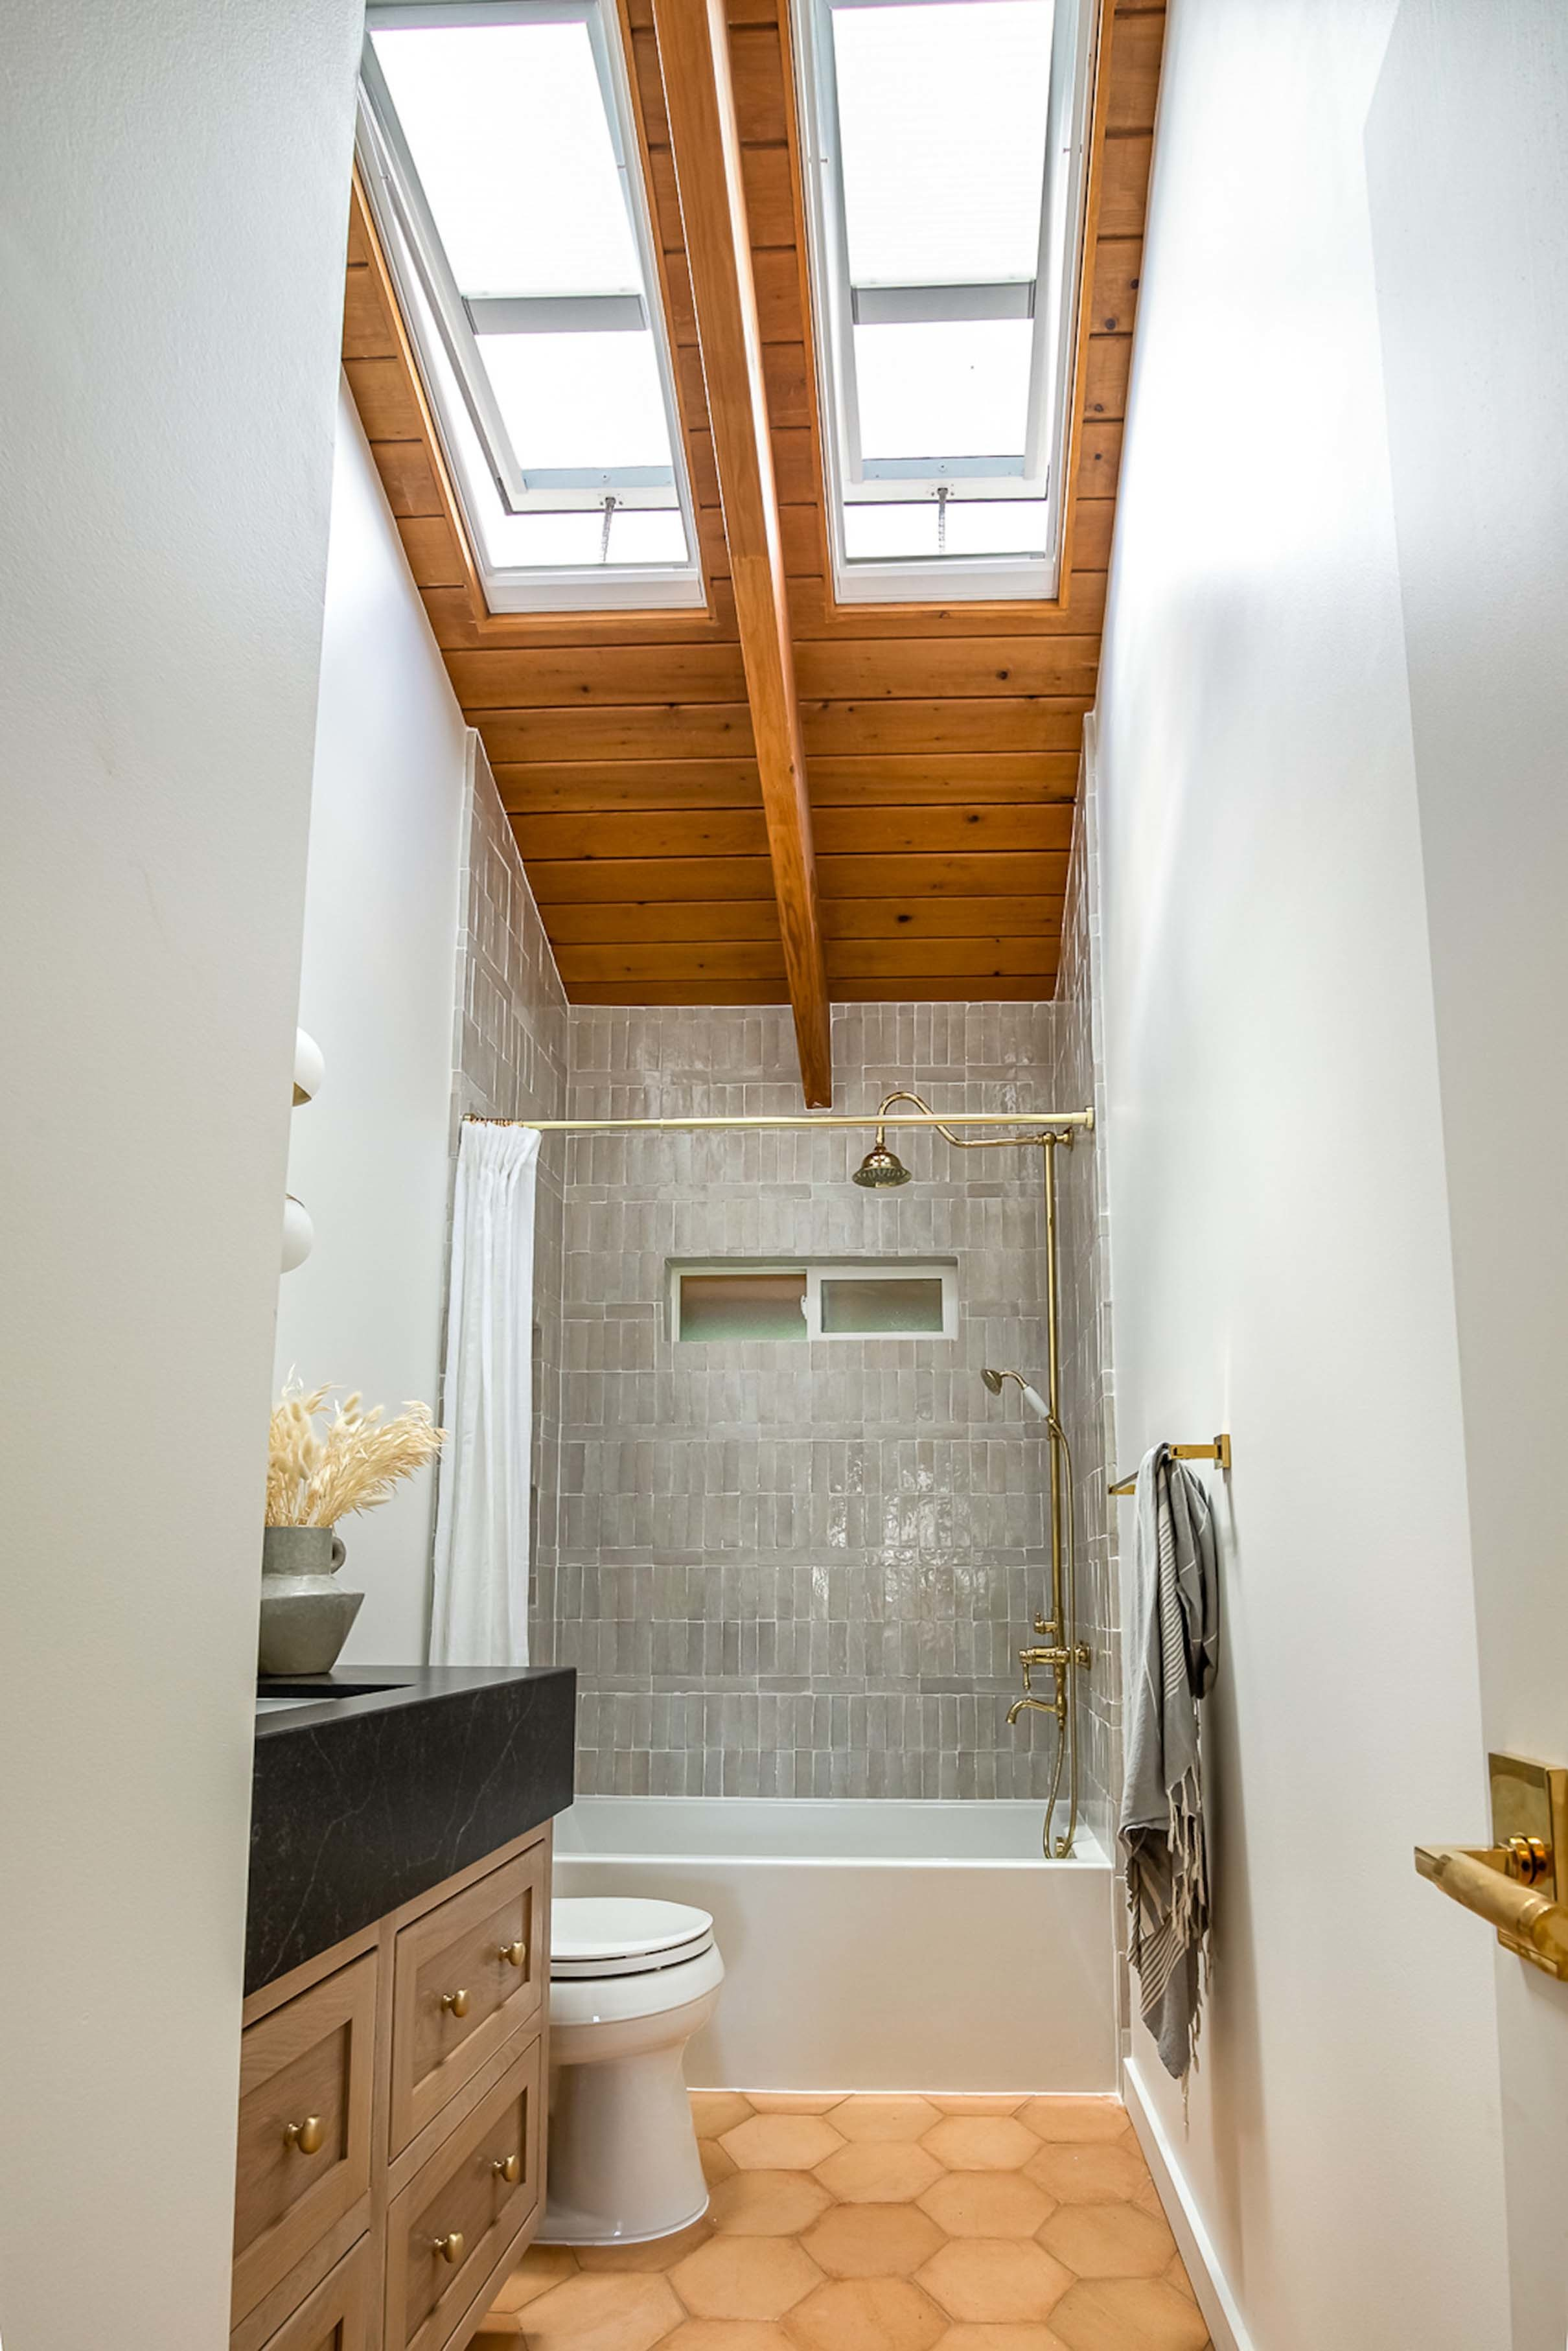 Small bathroom with two skylights in a wooden ceiling